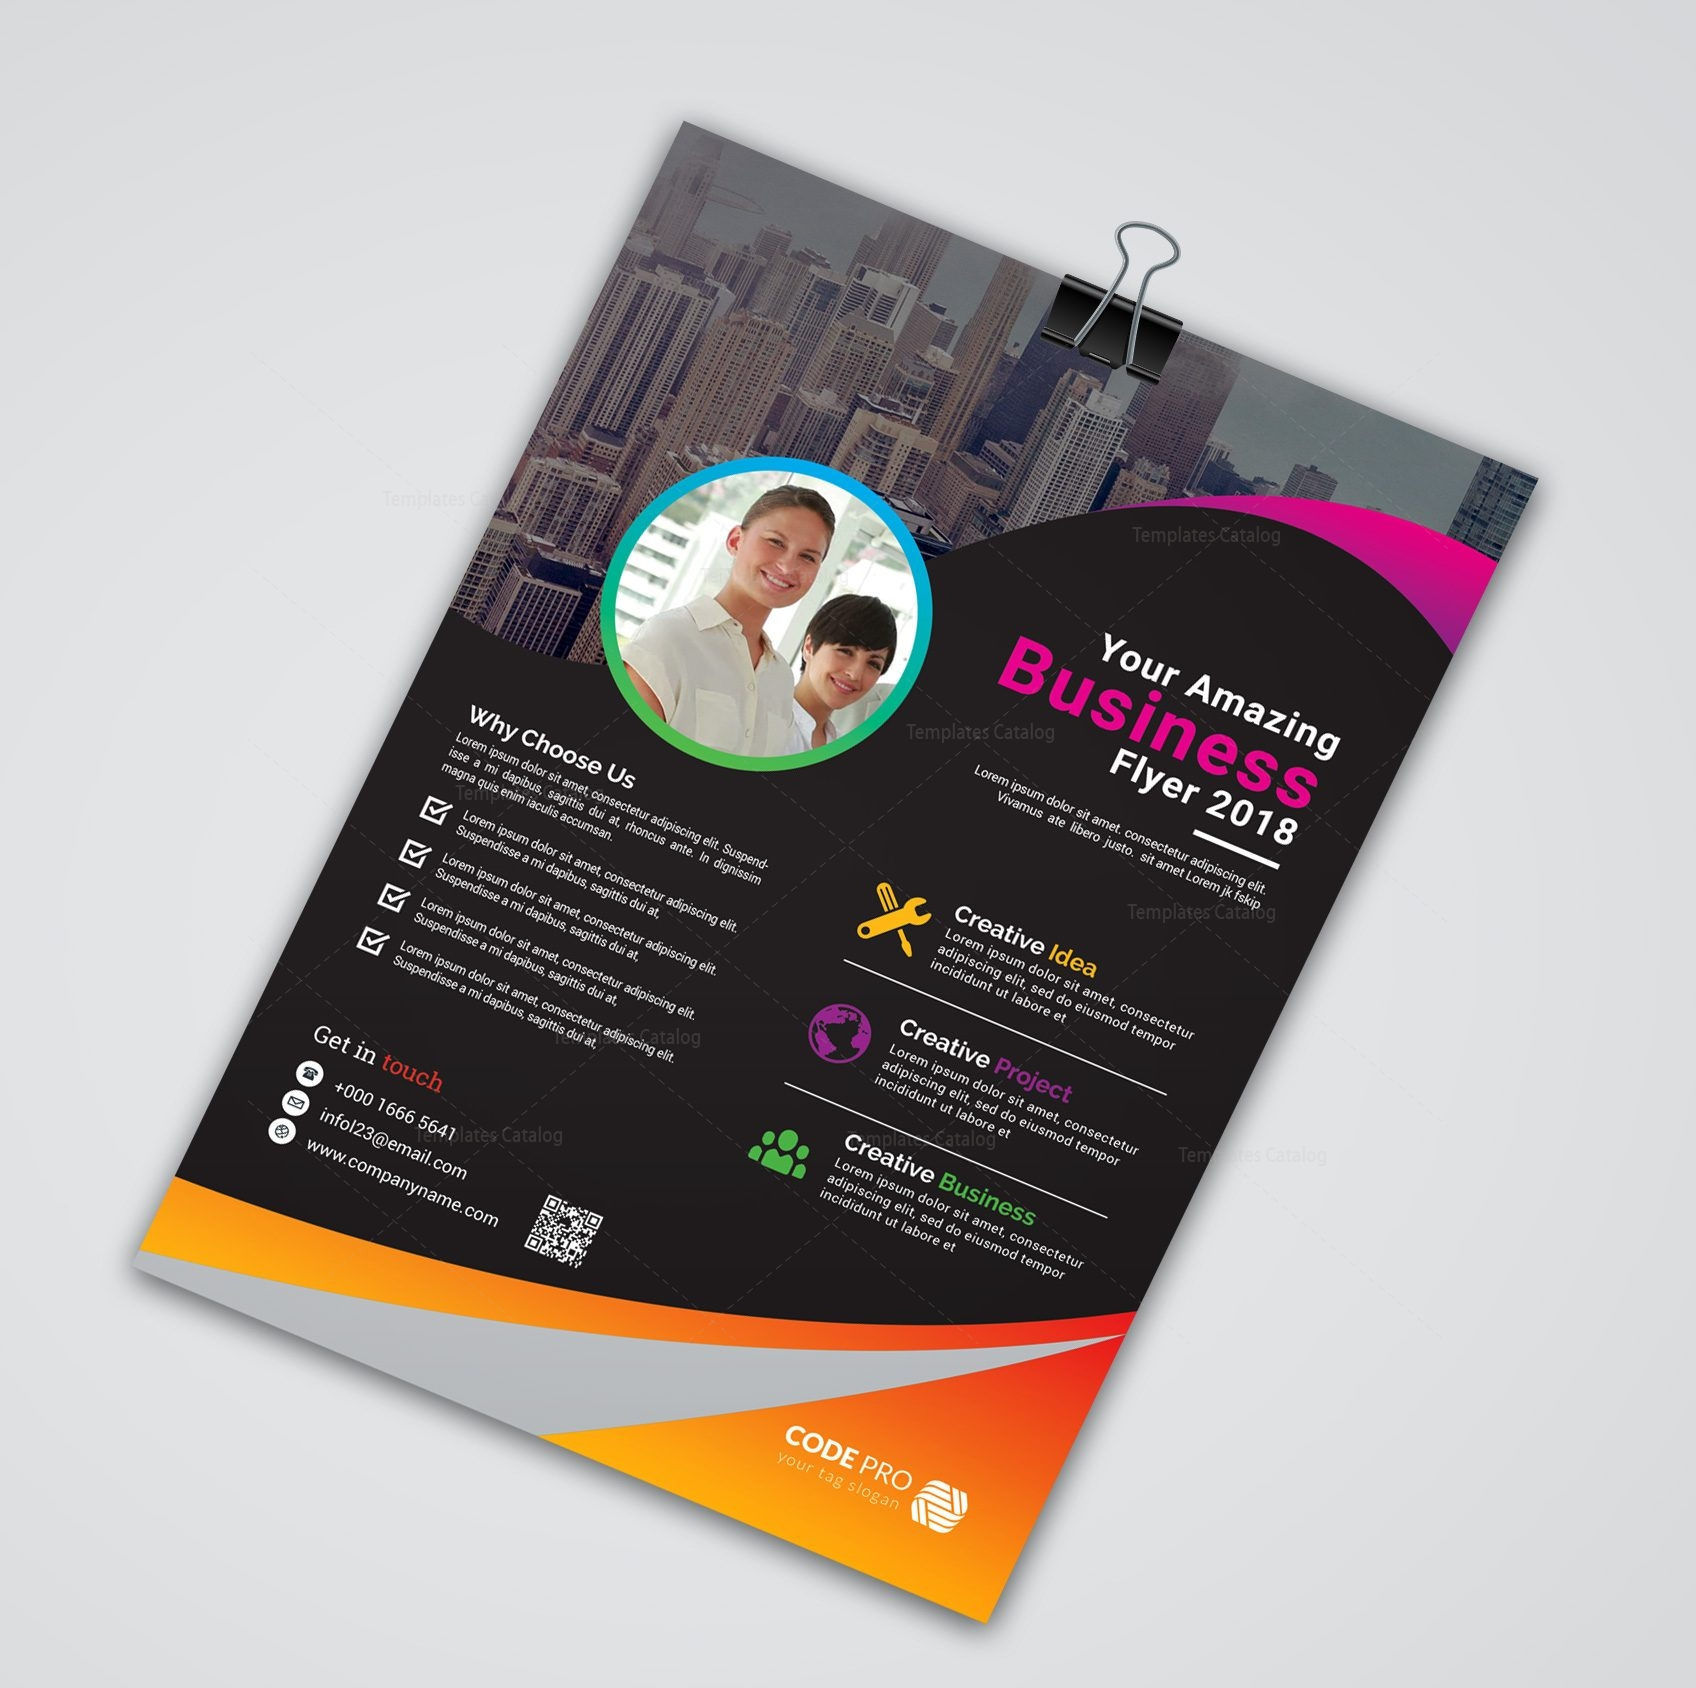 caracas creative business flyer design template 001638 template